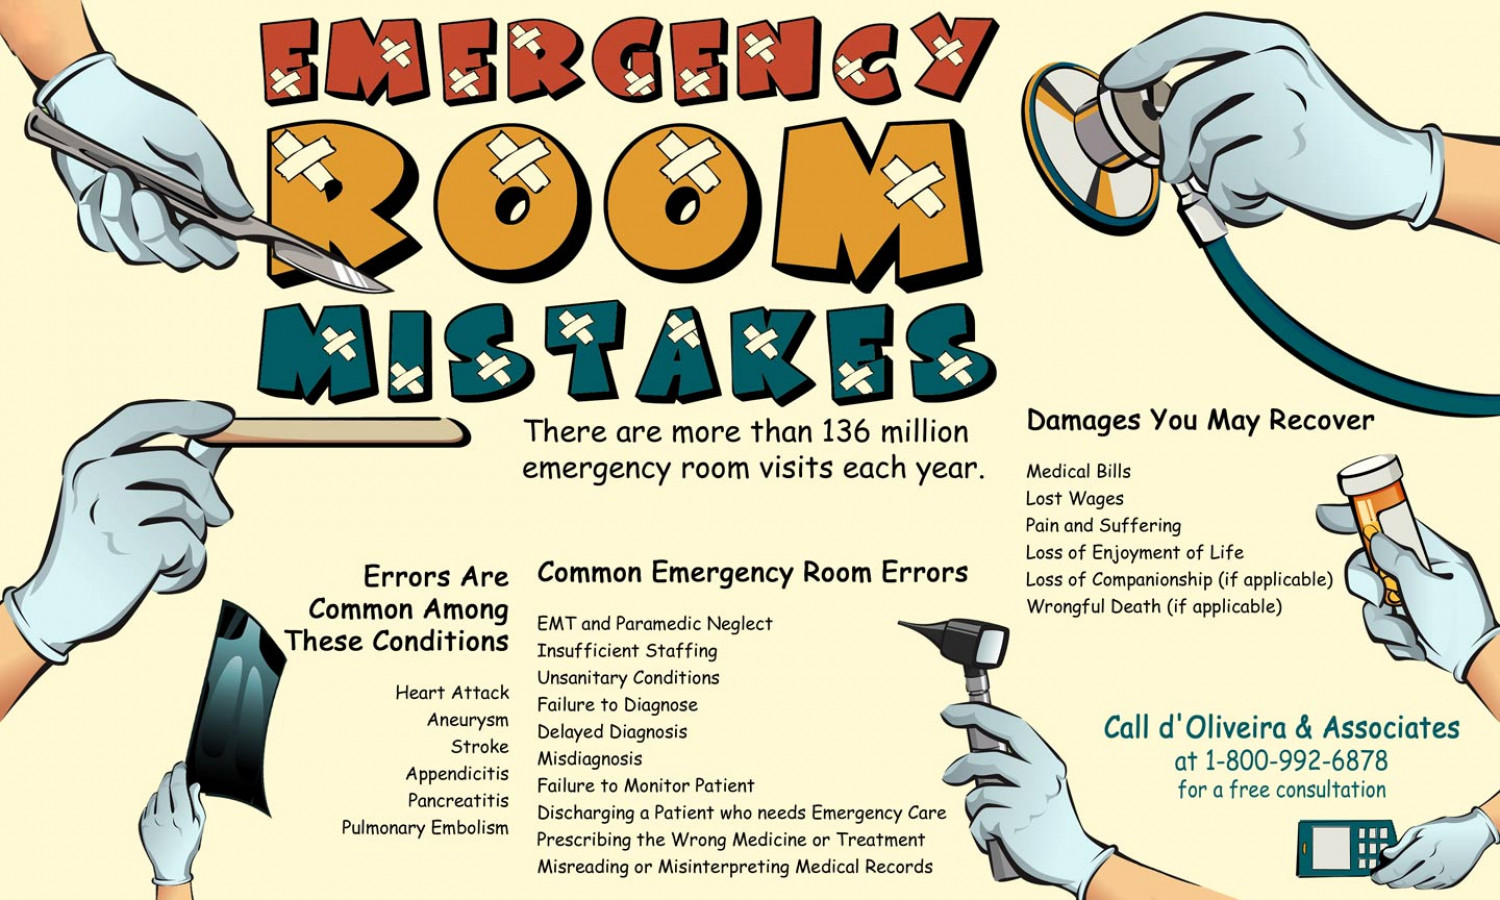 Emergency Room Mistakes Infographic